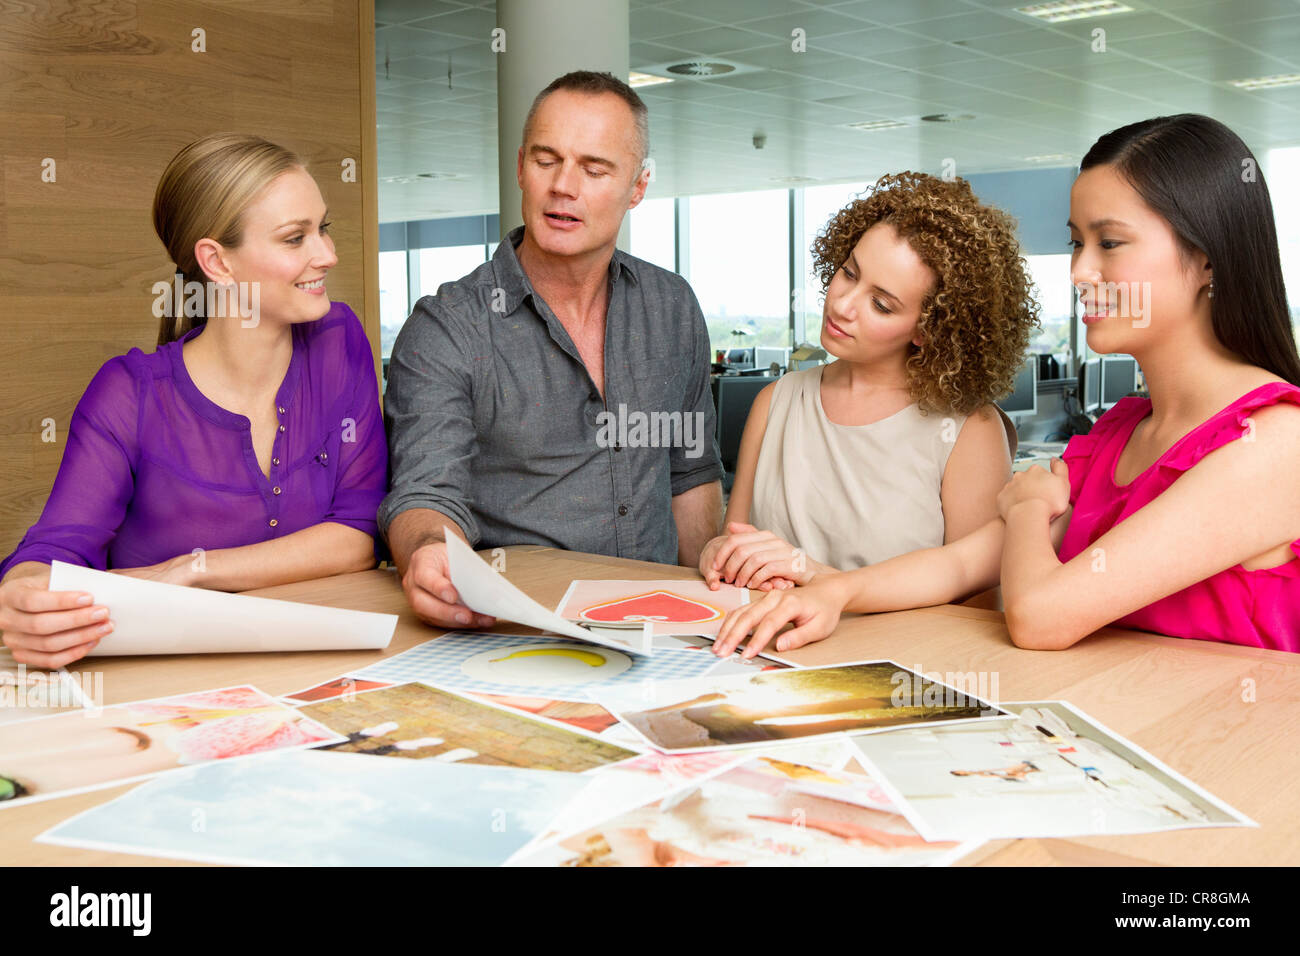 Fashion designers at desk looking at imagery - Stock Image